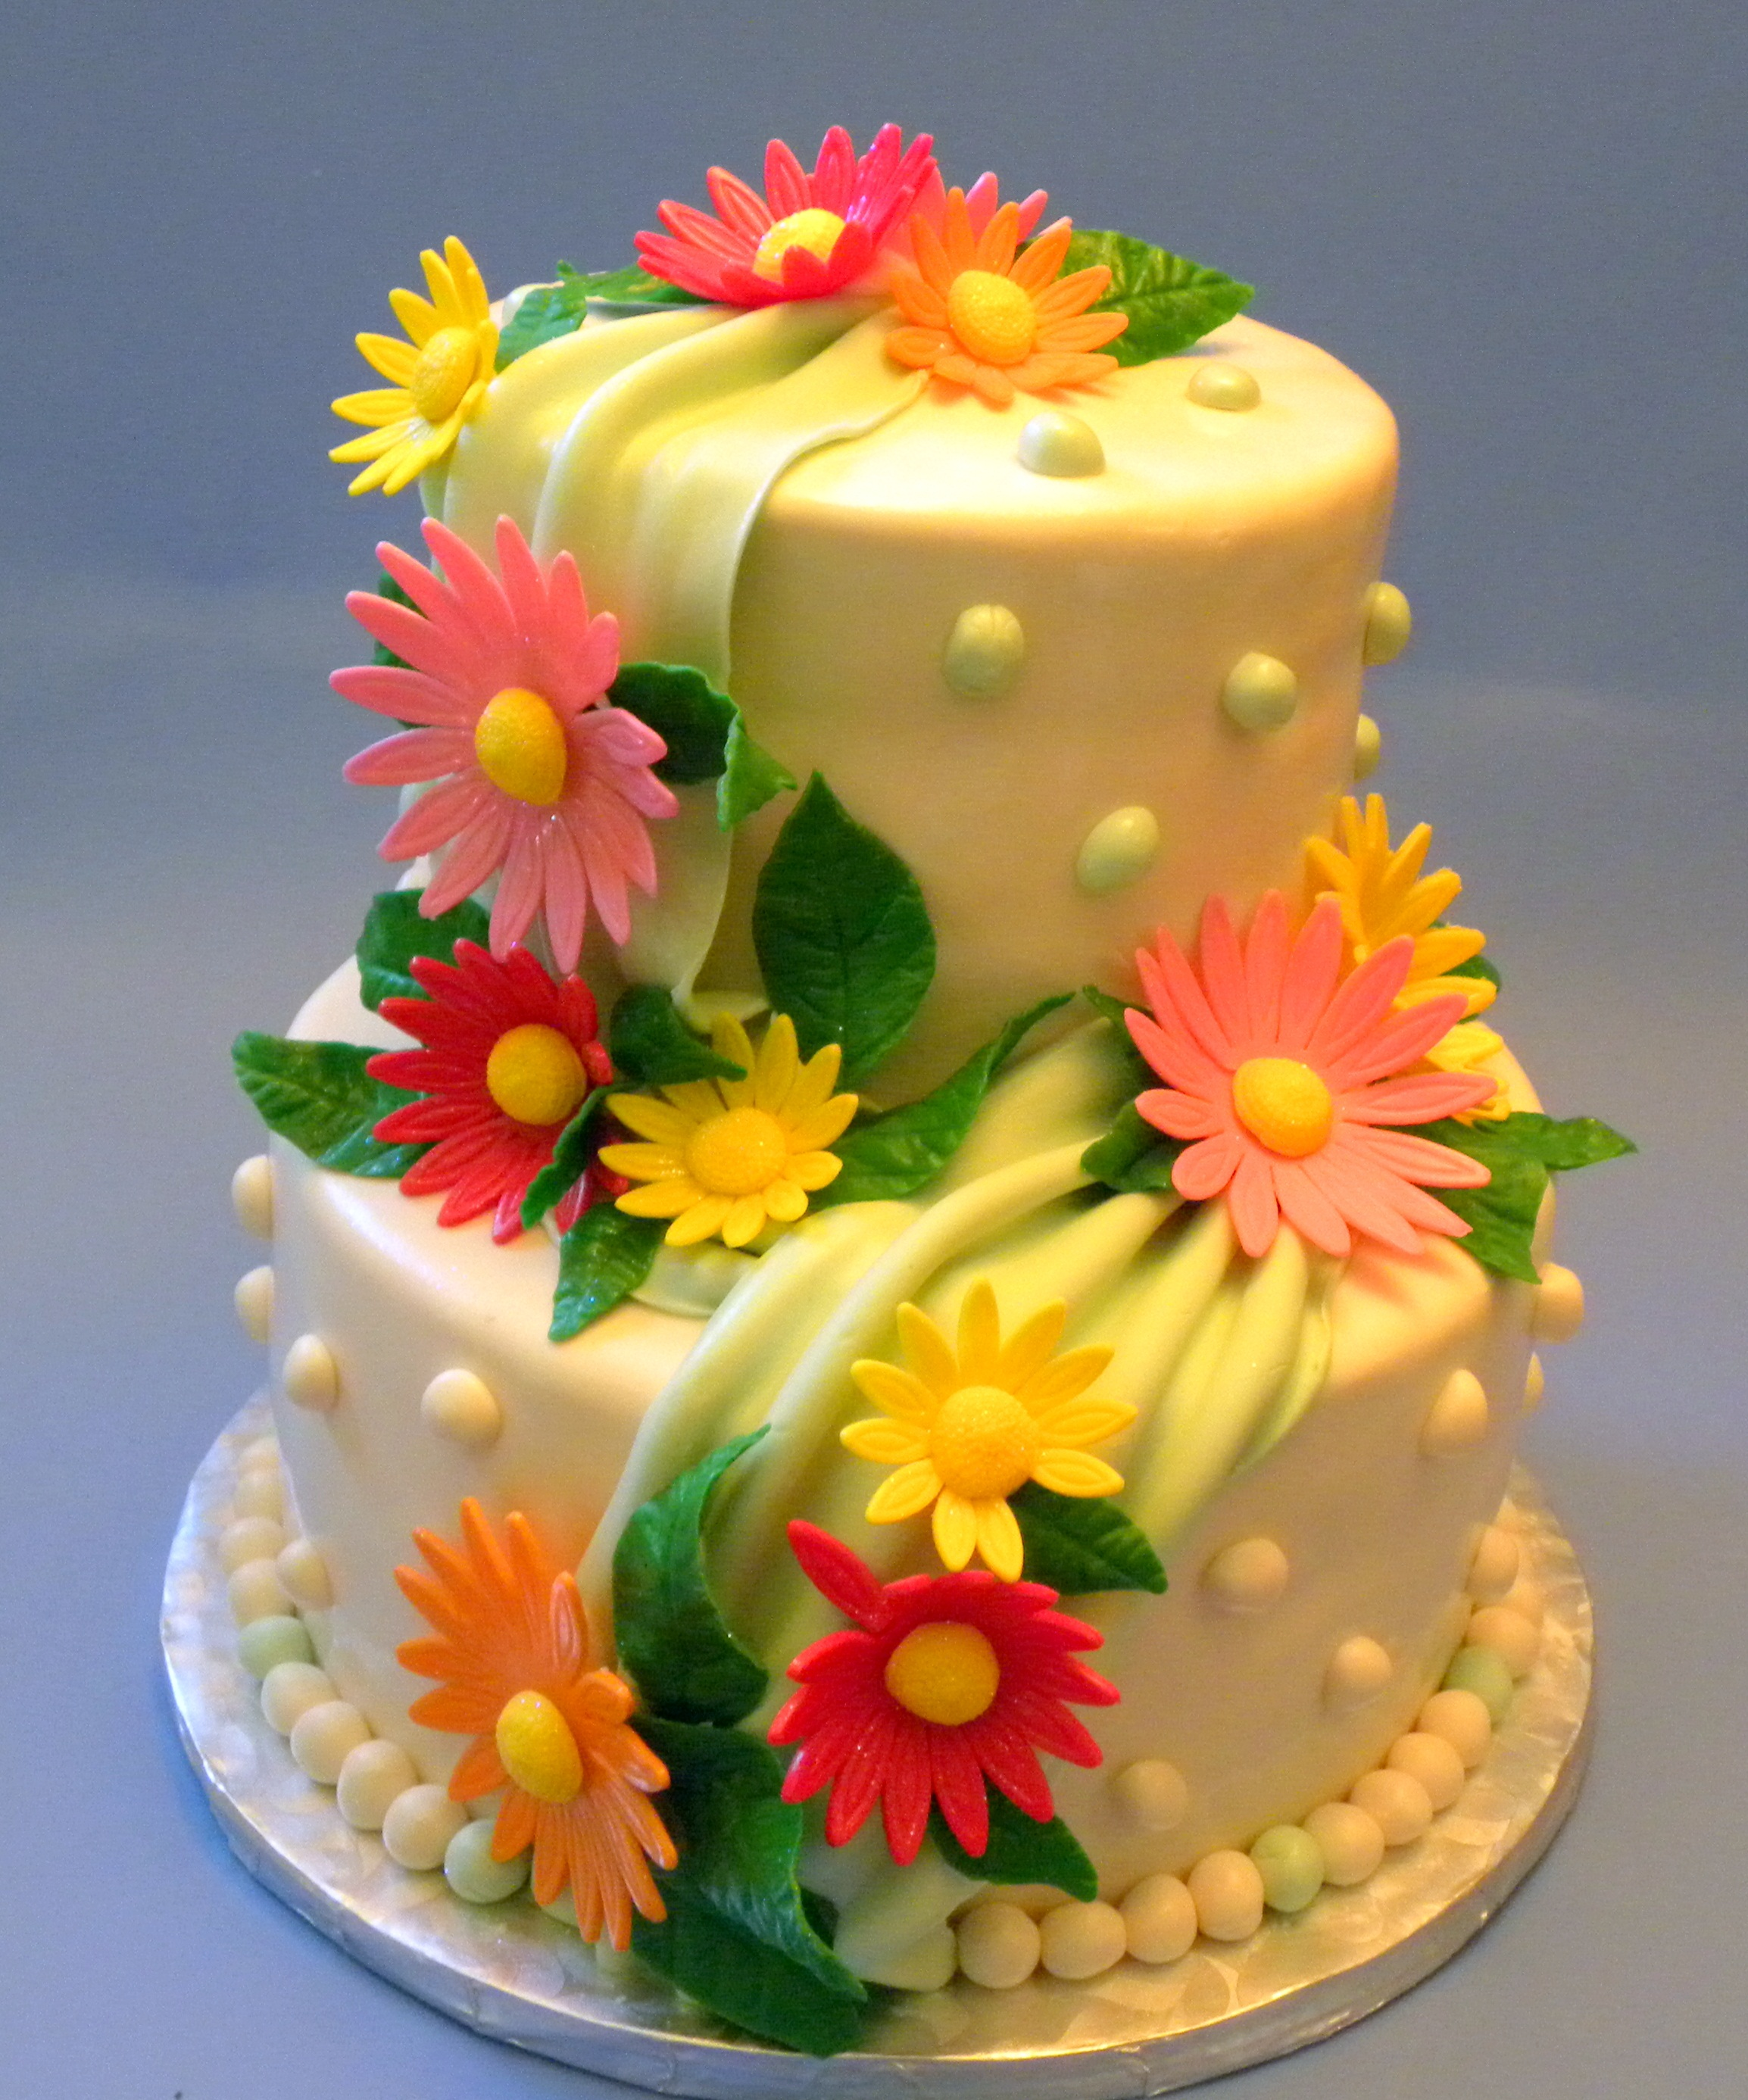 Fine Flower Cakes Decoration Ideas Little Birthday Cakes Funny Birthday Cards Online Barepcheapnameinfo